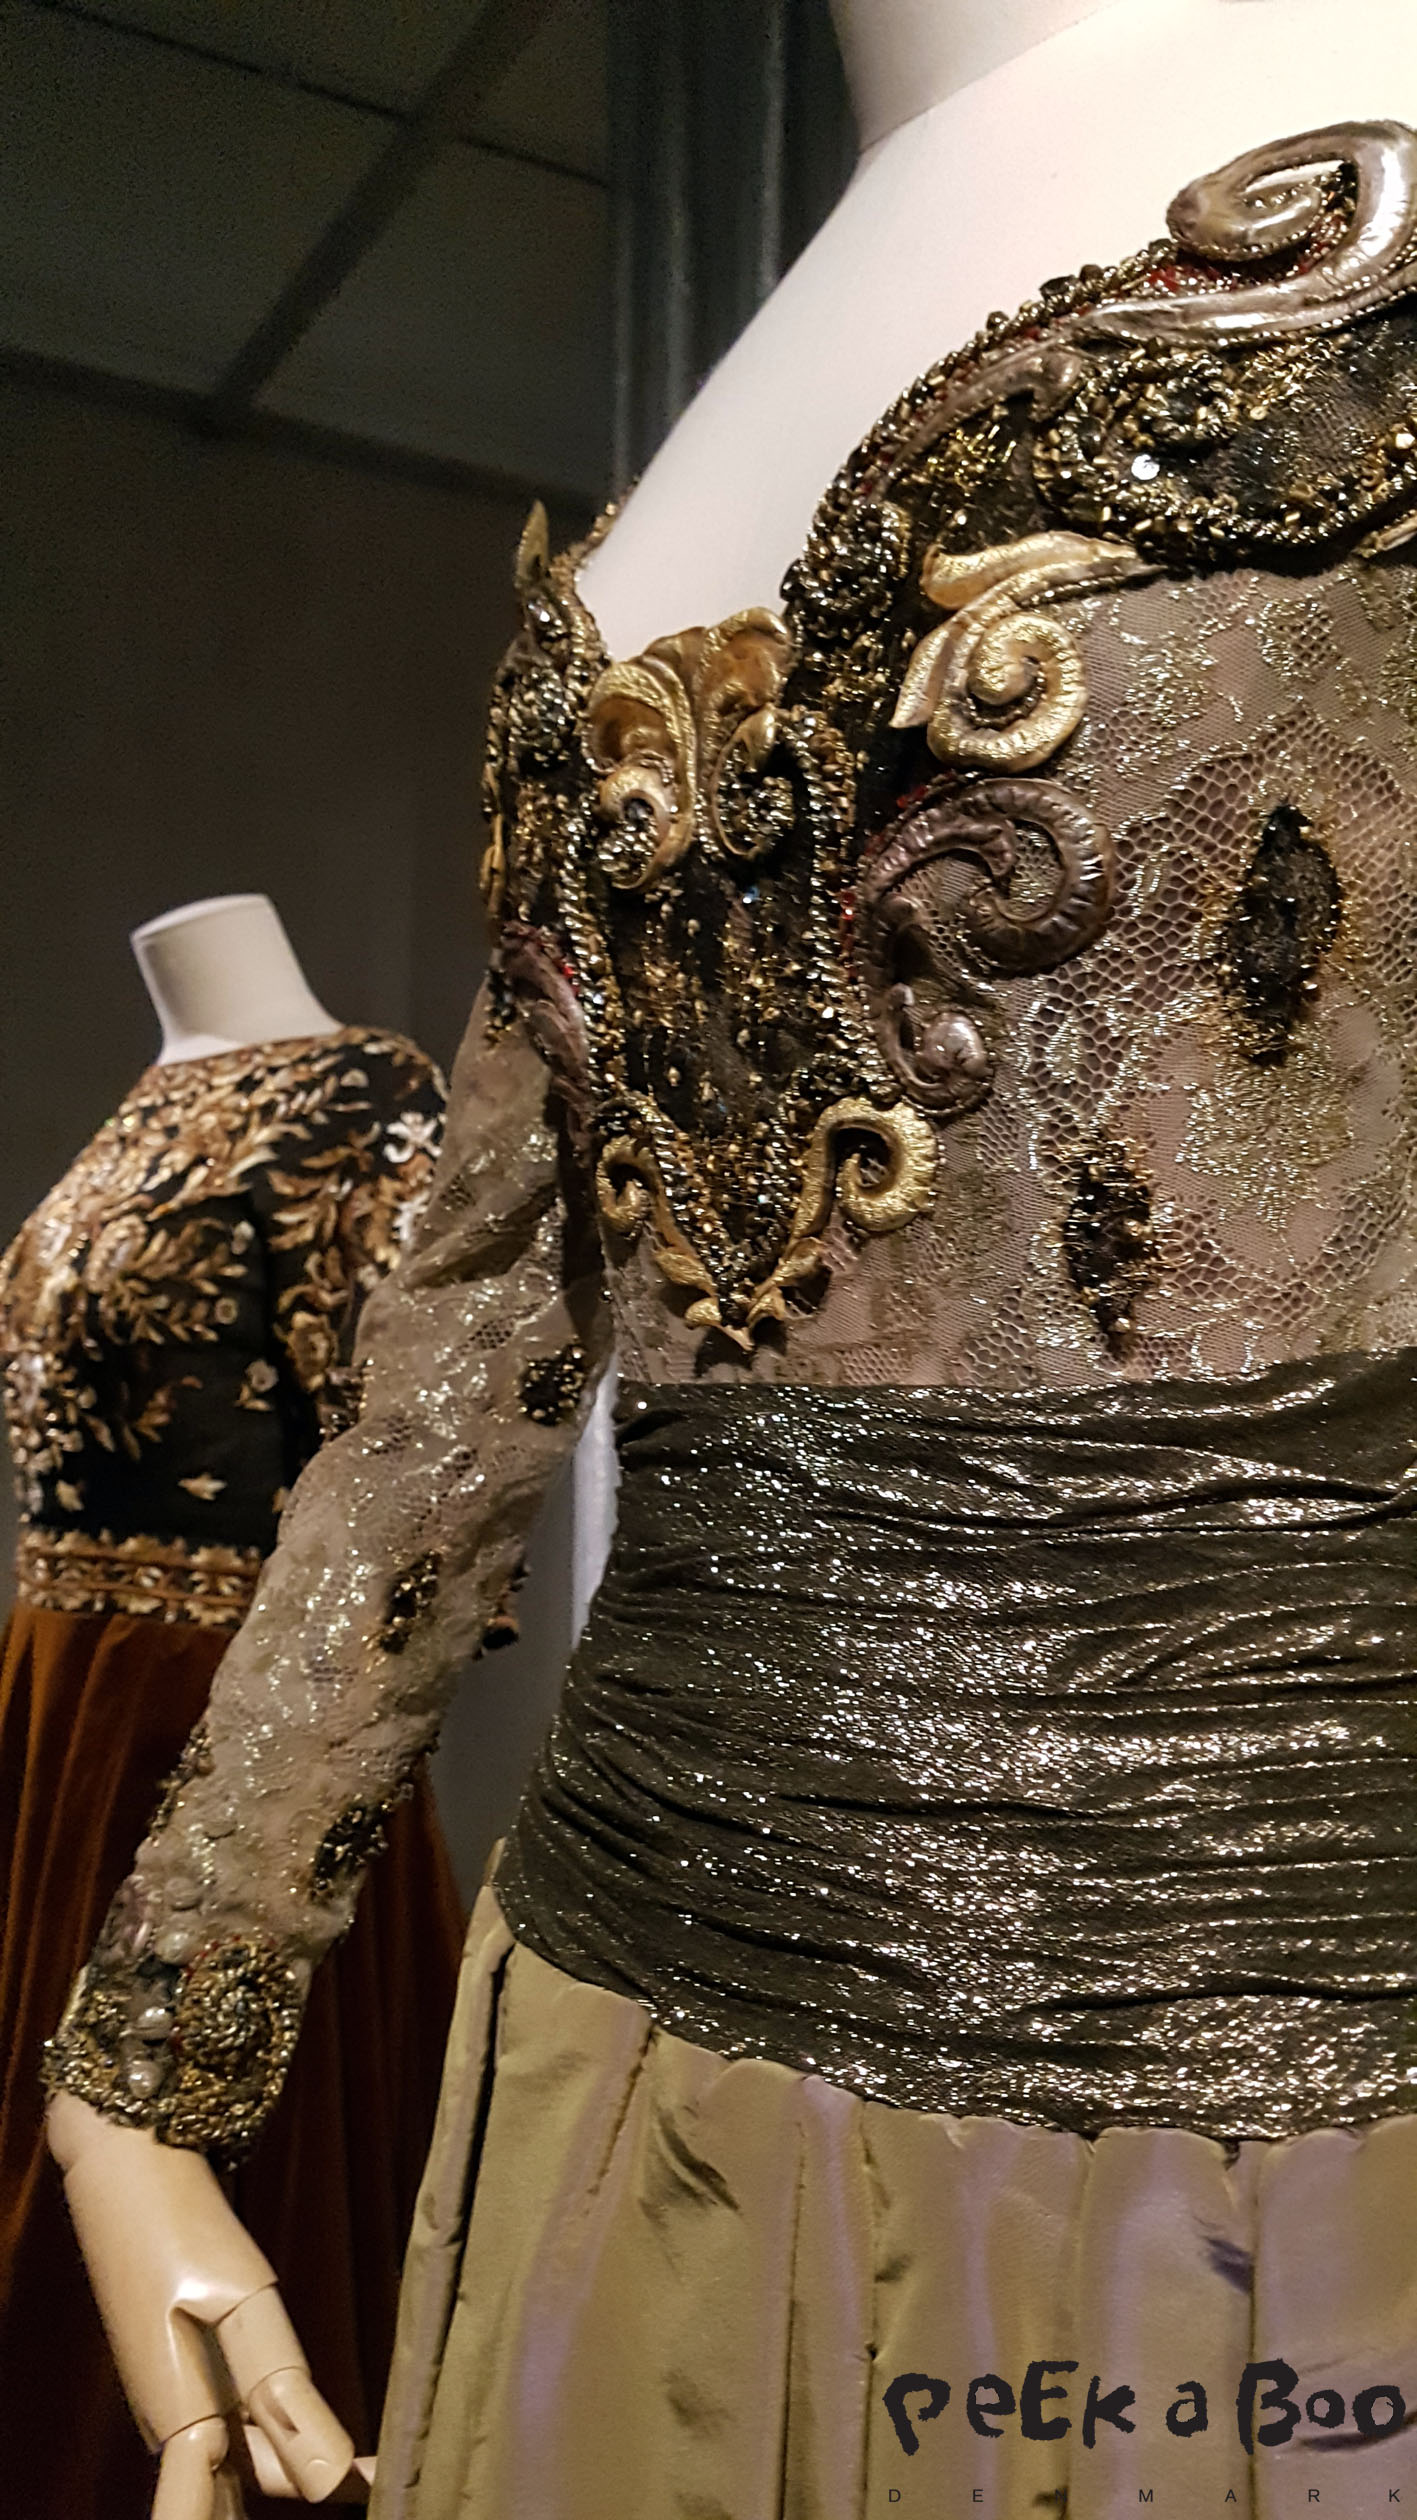 jean-Louis Scherrer creations with impressive embroidery work.